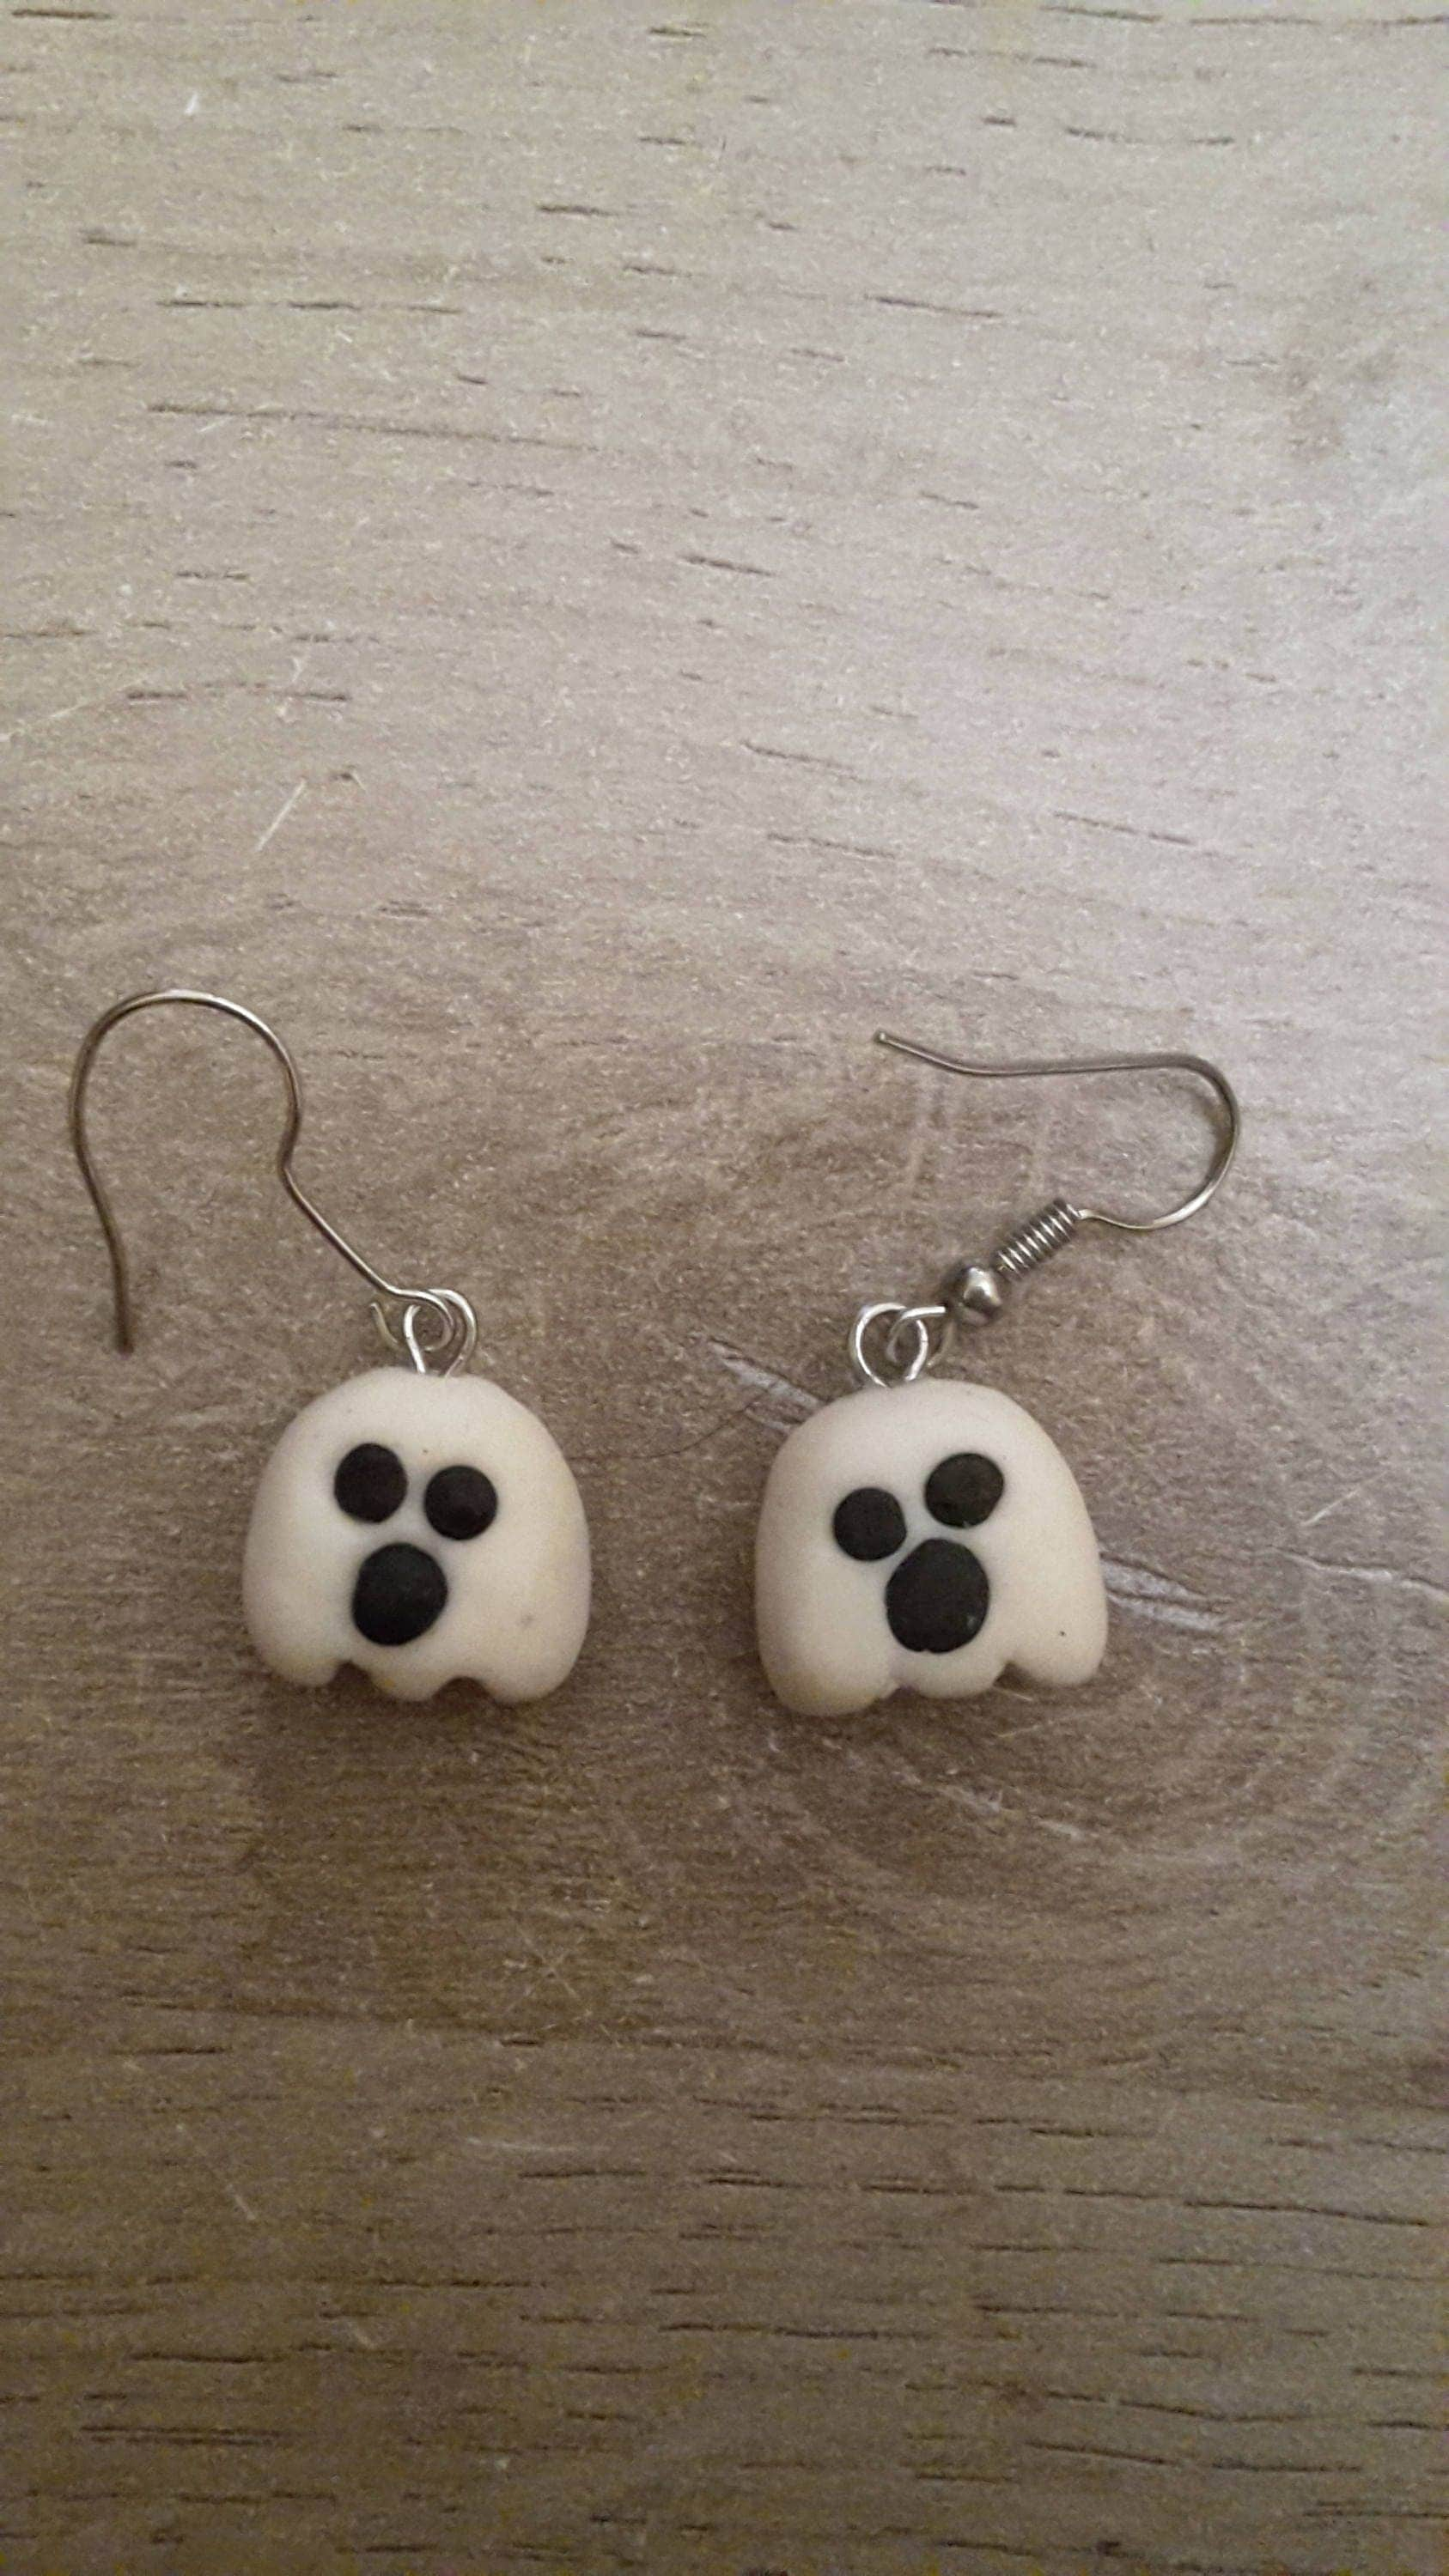 jewellery ghost products bunny sterling silver furkeeps lop earrings stud eared handmade